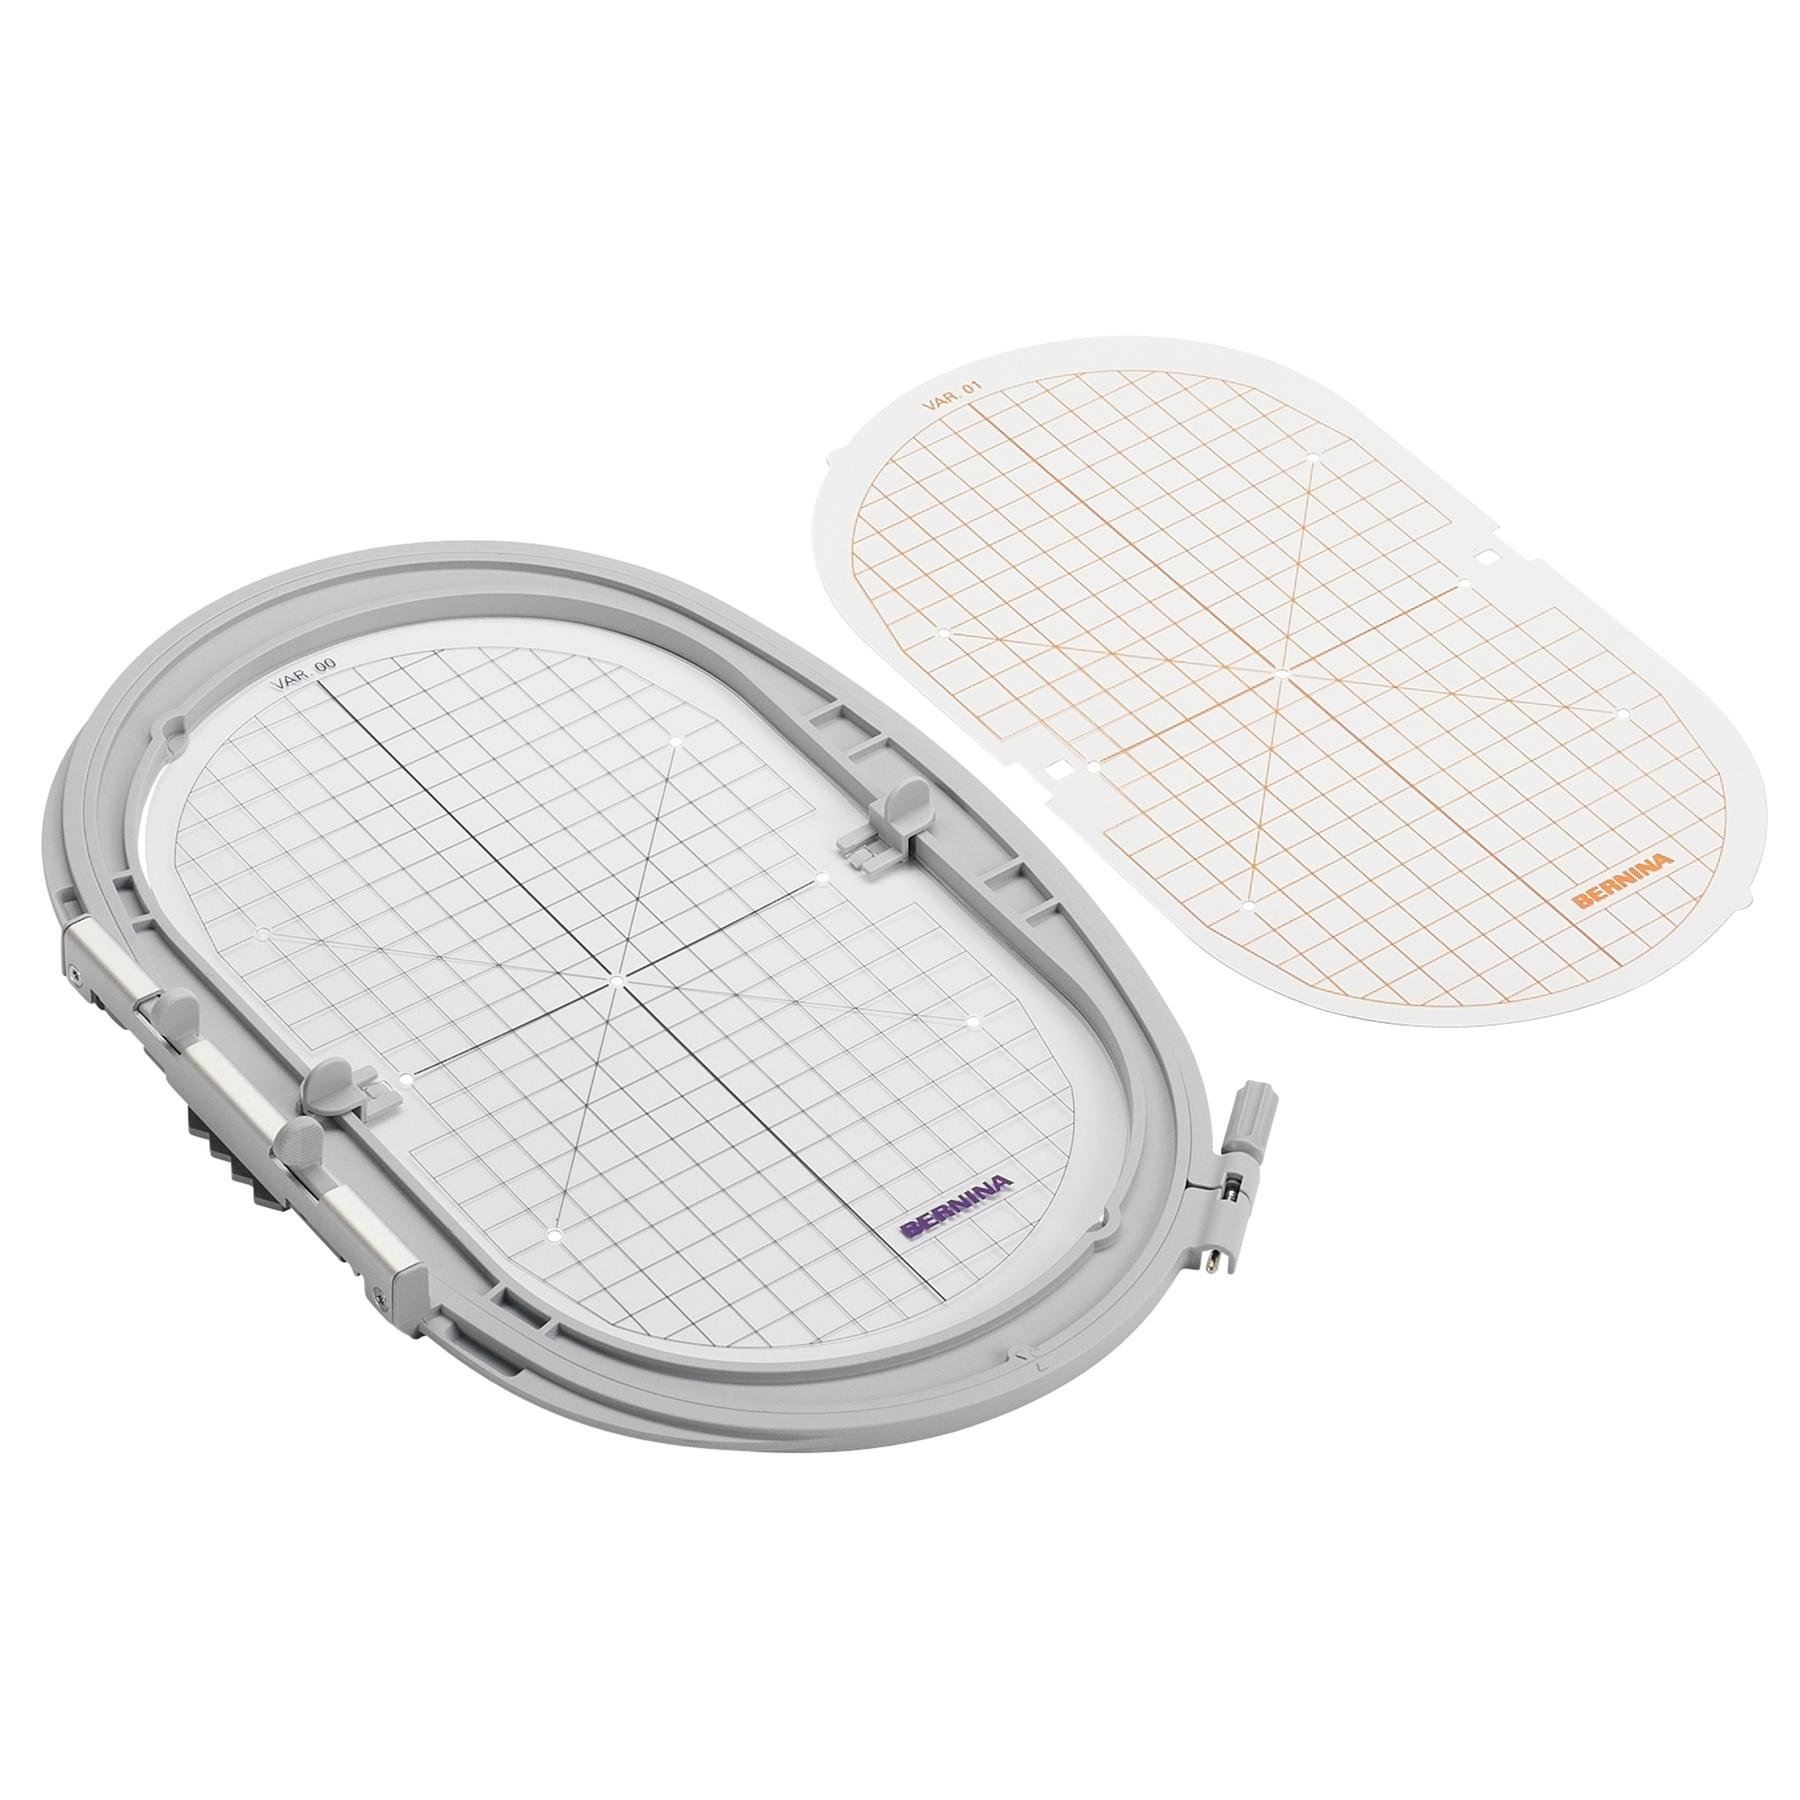 Bernina large oval embroidery hoop frank nutt sewing